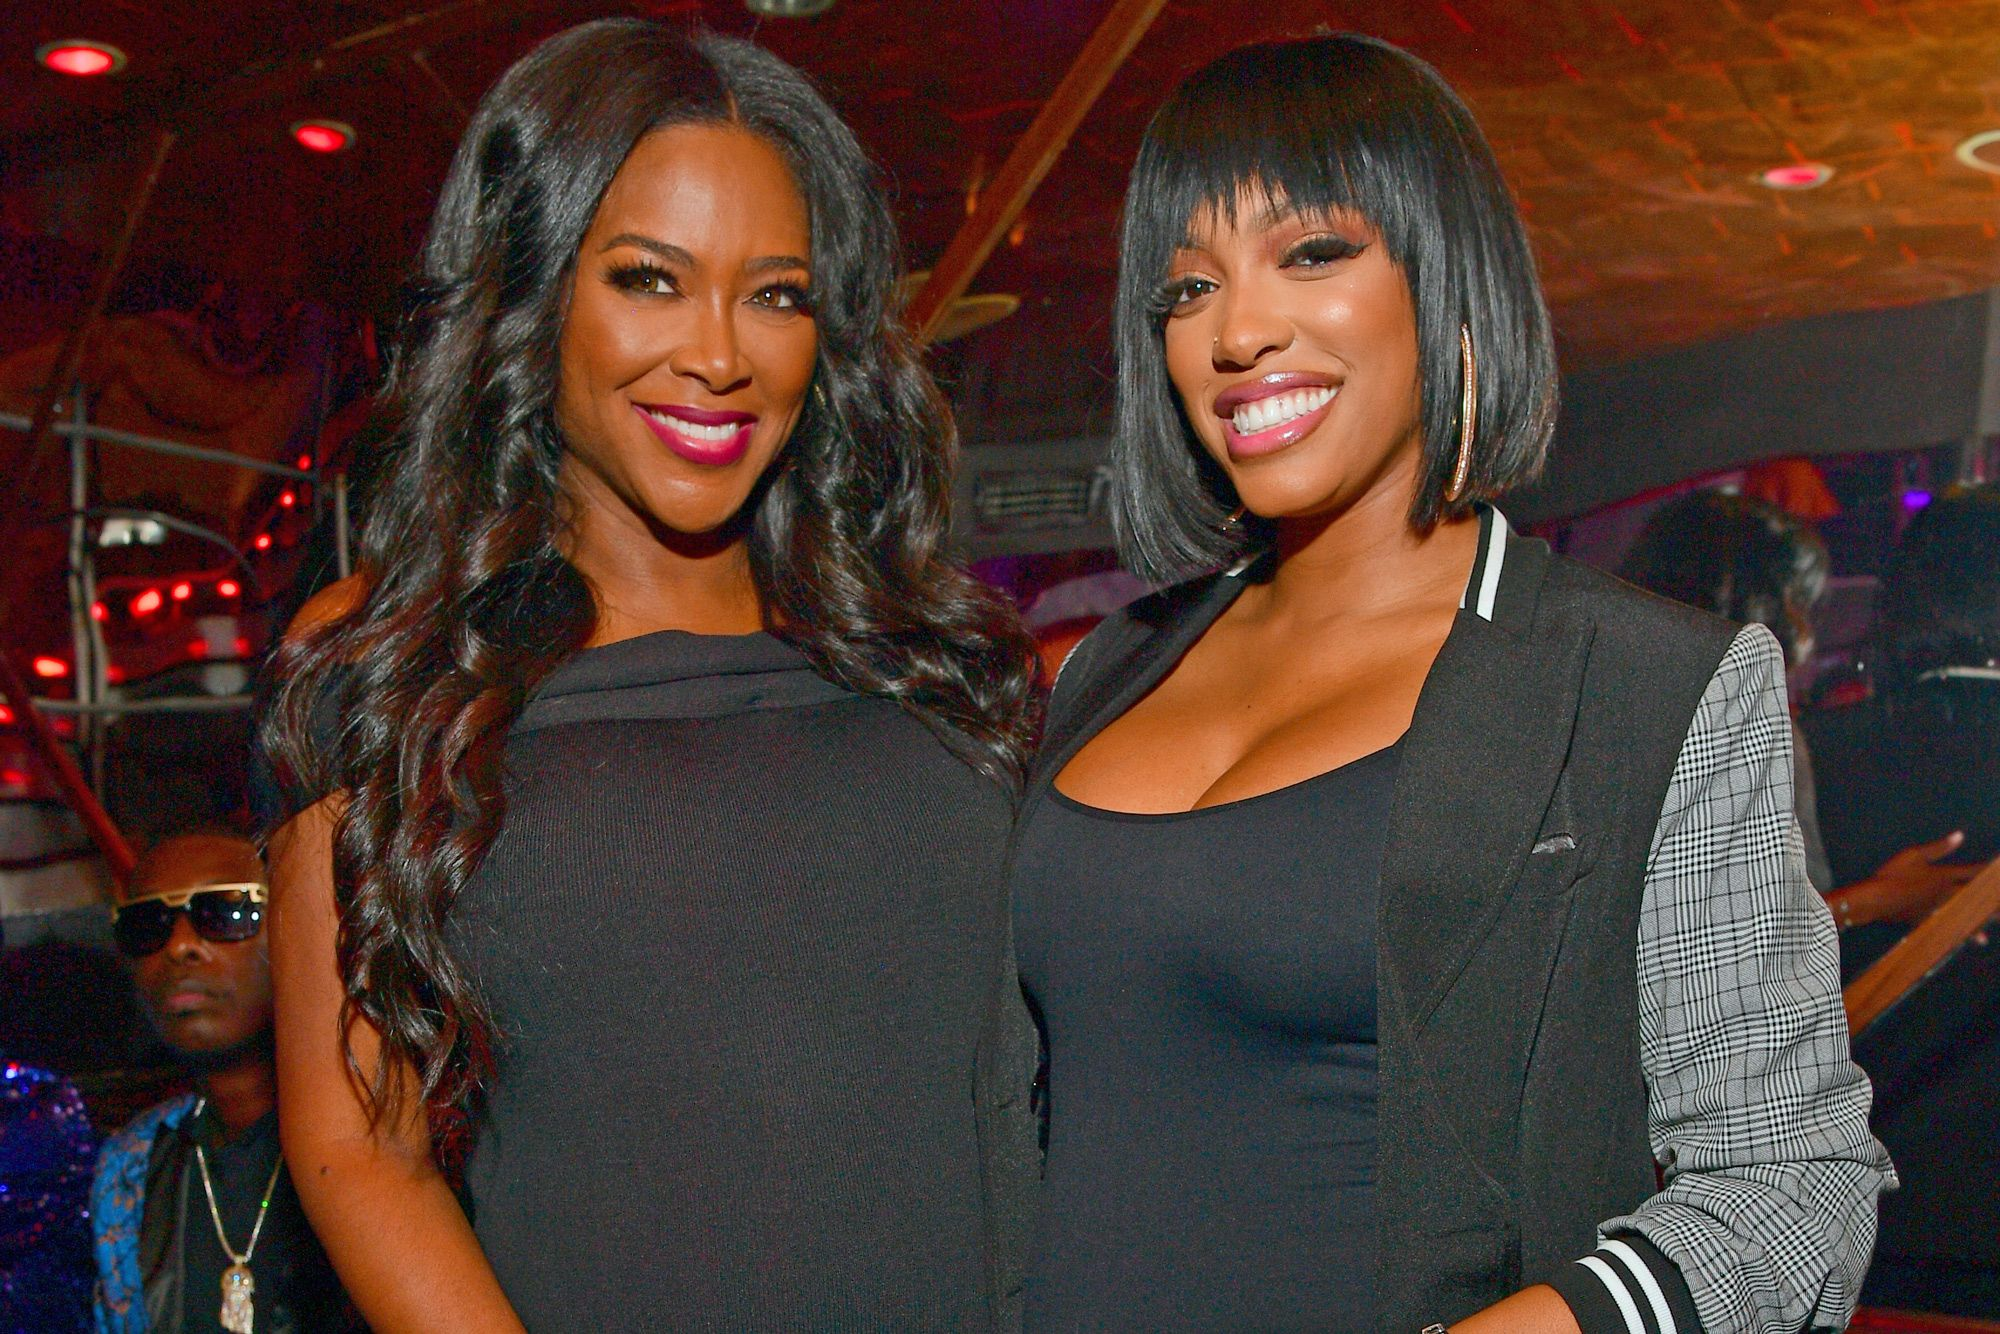 RHOA: Kenya Moore Regifts Eva Marcille's Gift To Porsha Williams And Baby Pilar Jhena And Some Find This Shady - See The Video